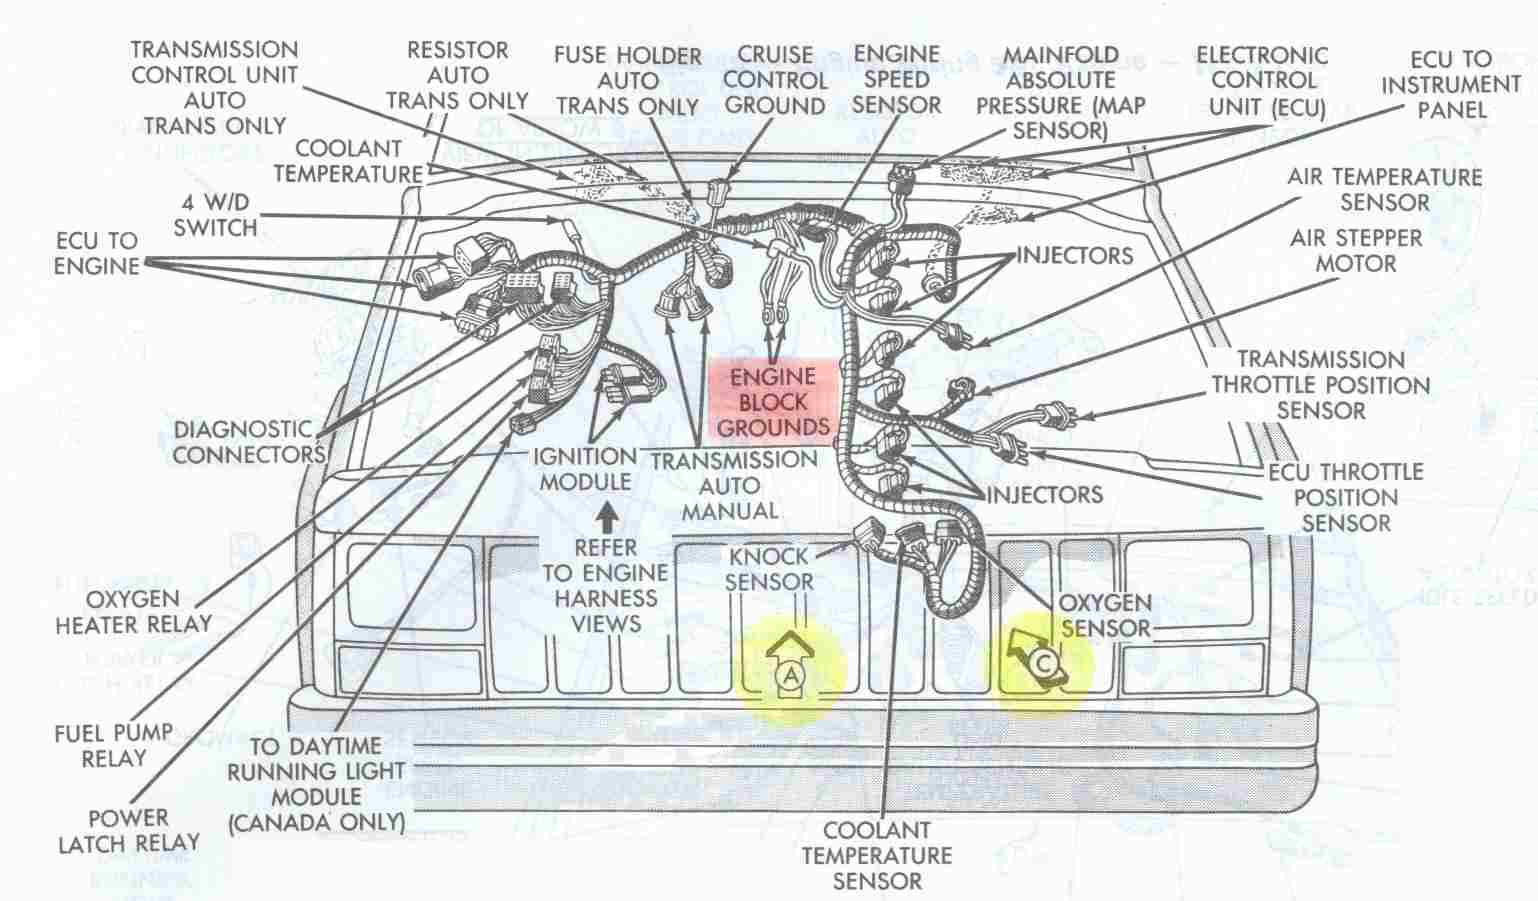 hight resolution of 1987 jeep cherokee wiring harness diagram wiring diagram article 1987 jeep cherokee engine diagram wiring diagrams